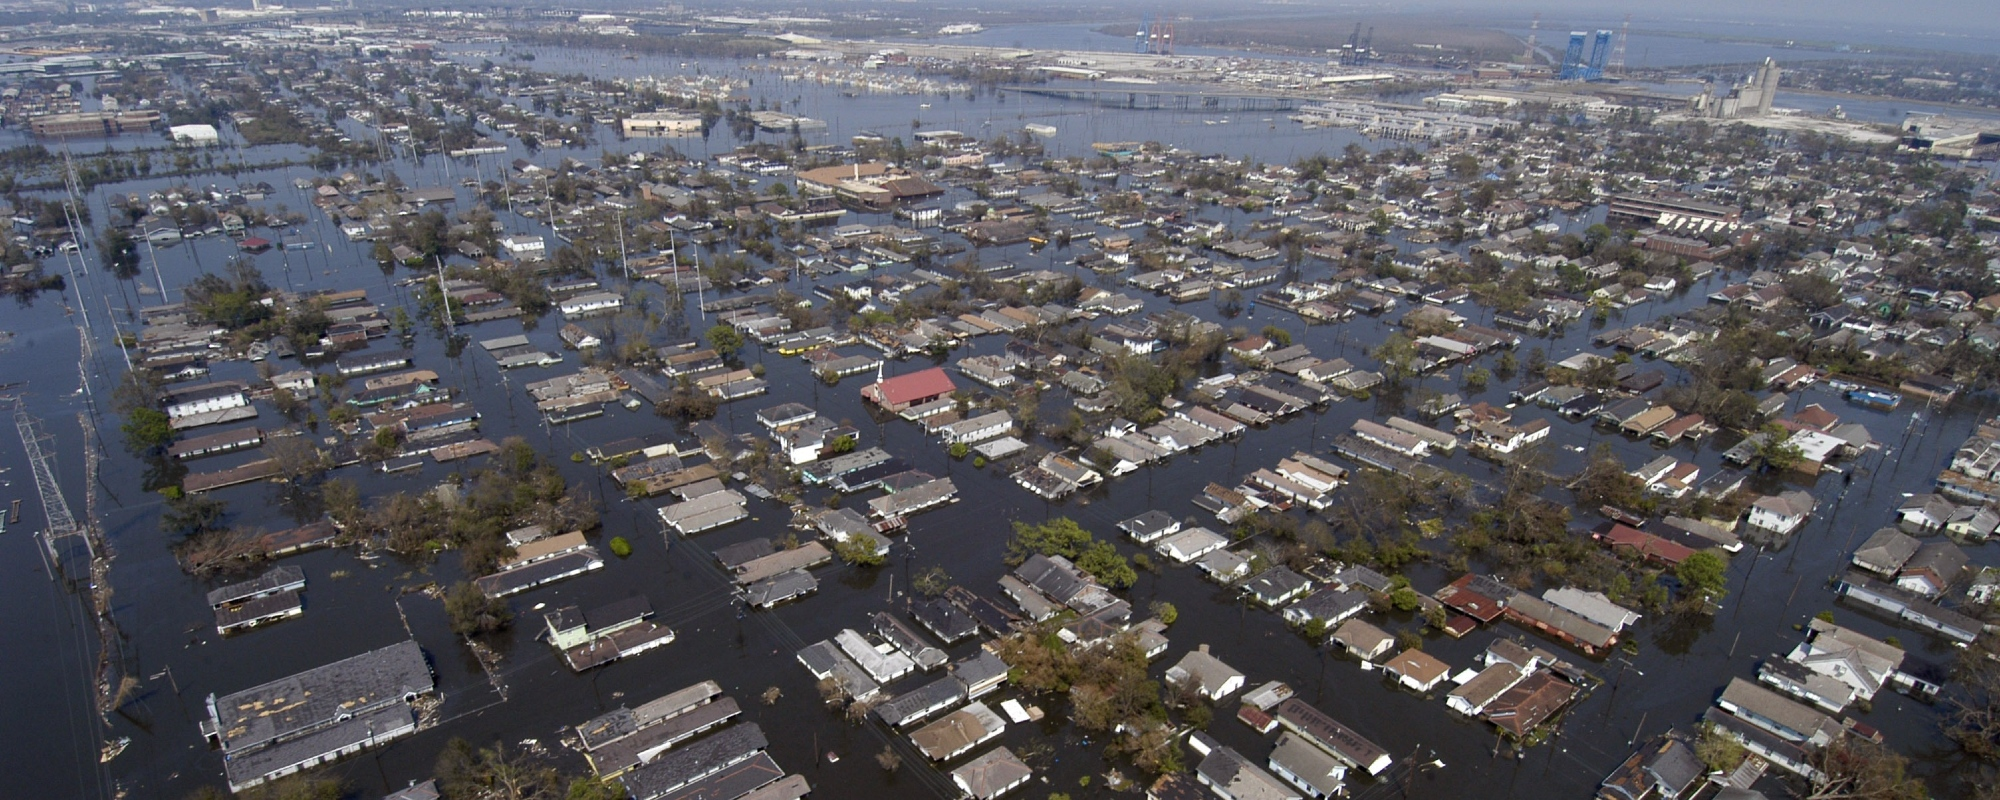 Aerial view of flooded city of New Orleans